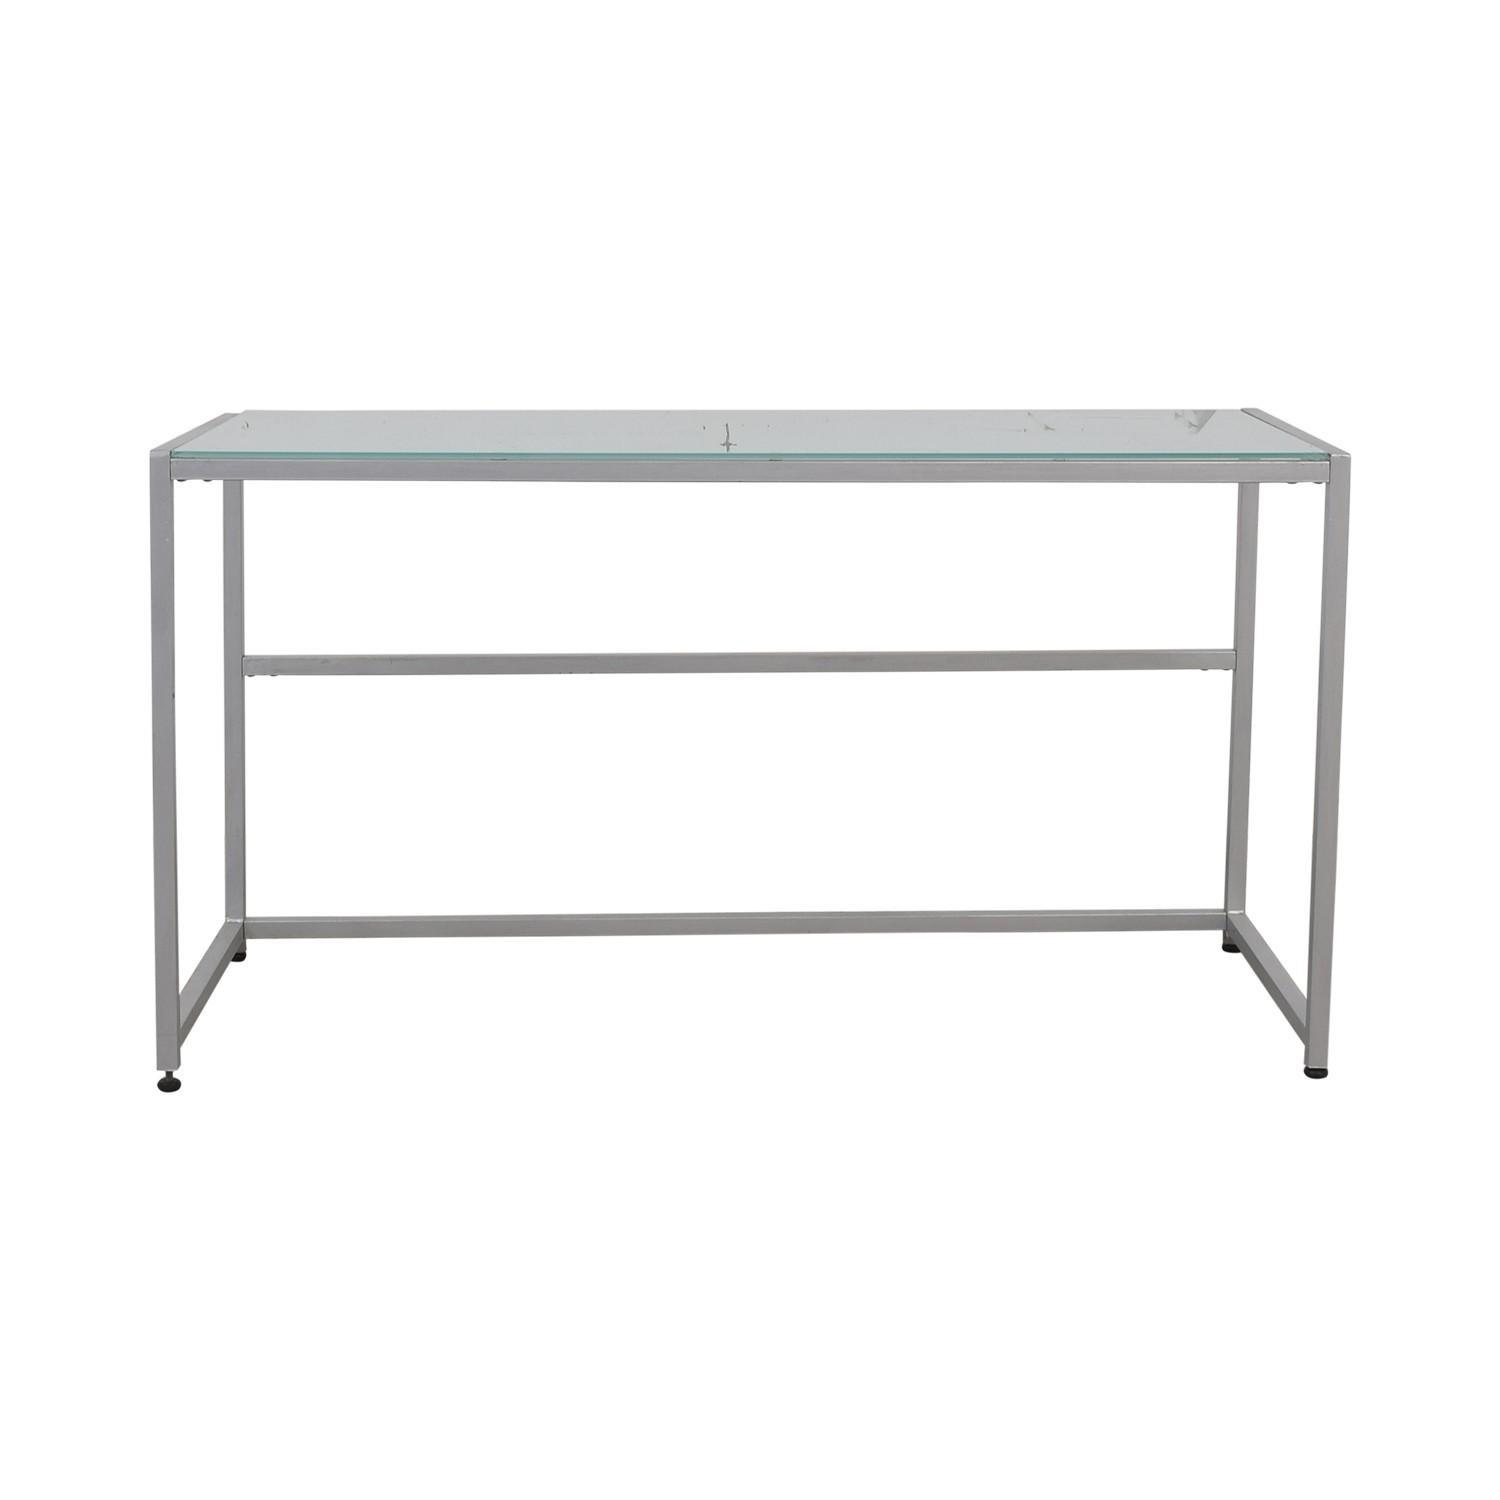 CB2 Trig Frosted Glass Desk/Console Table - image-0